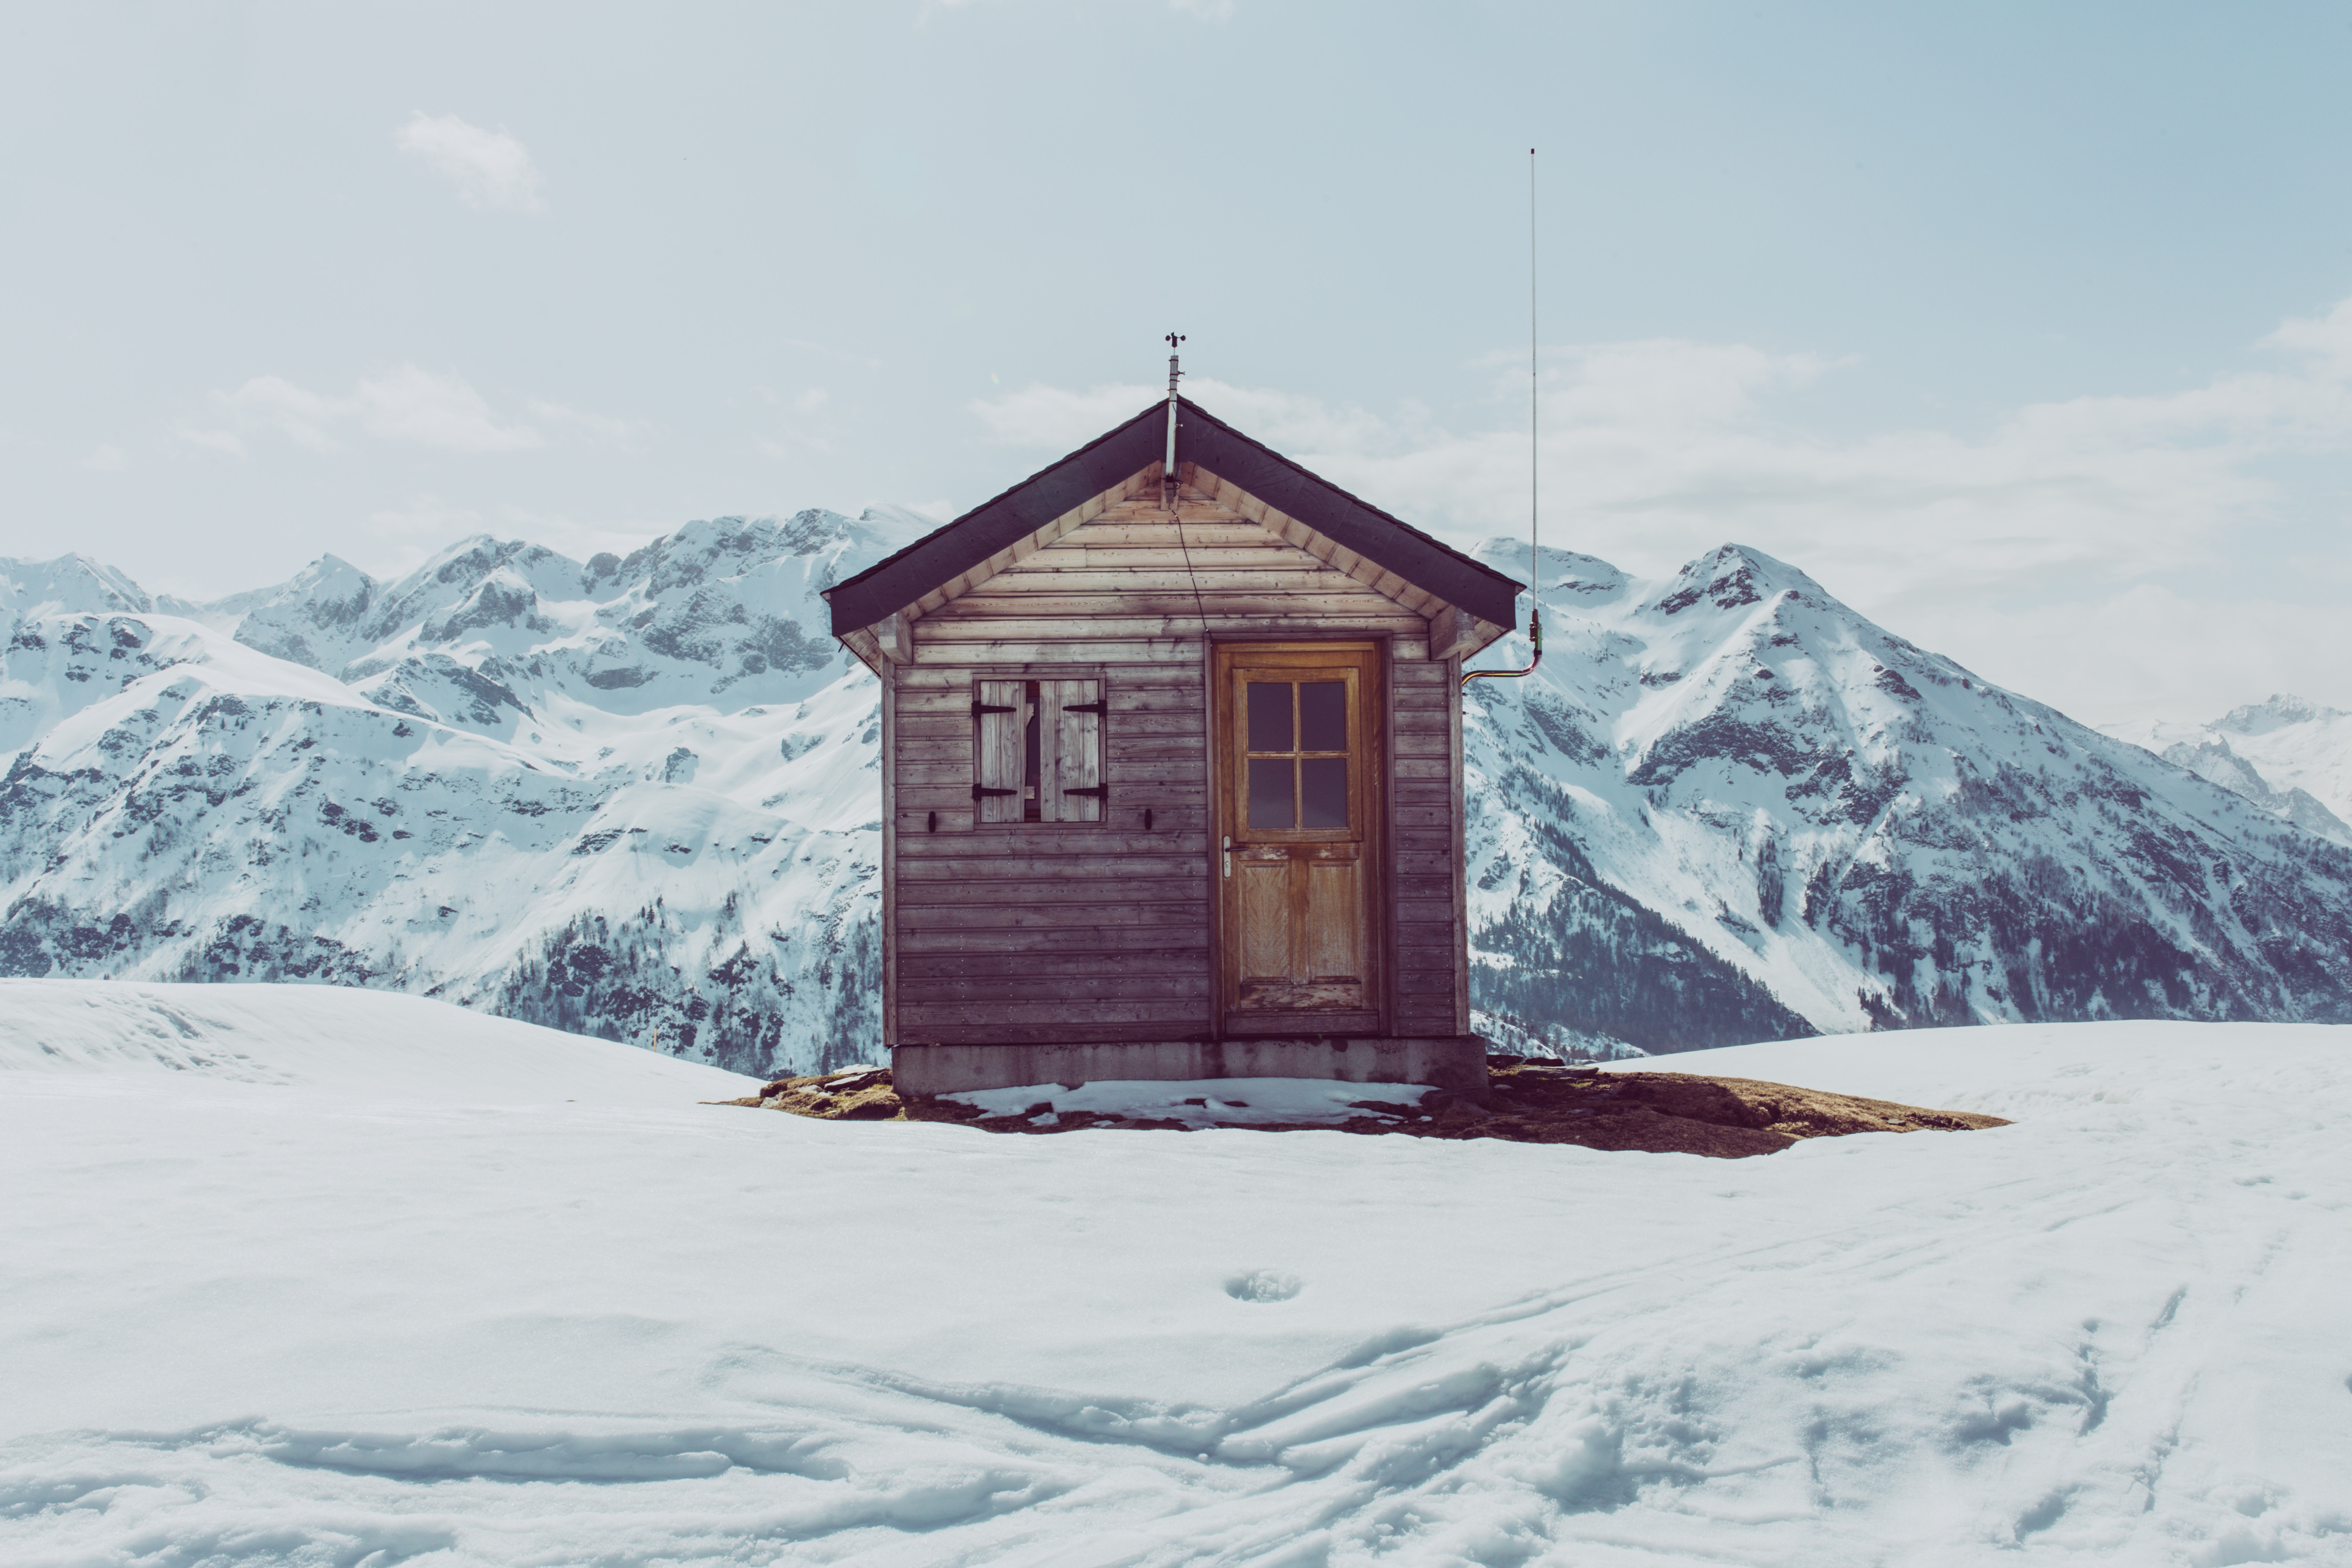 Snow Surrounding Home in Mountains